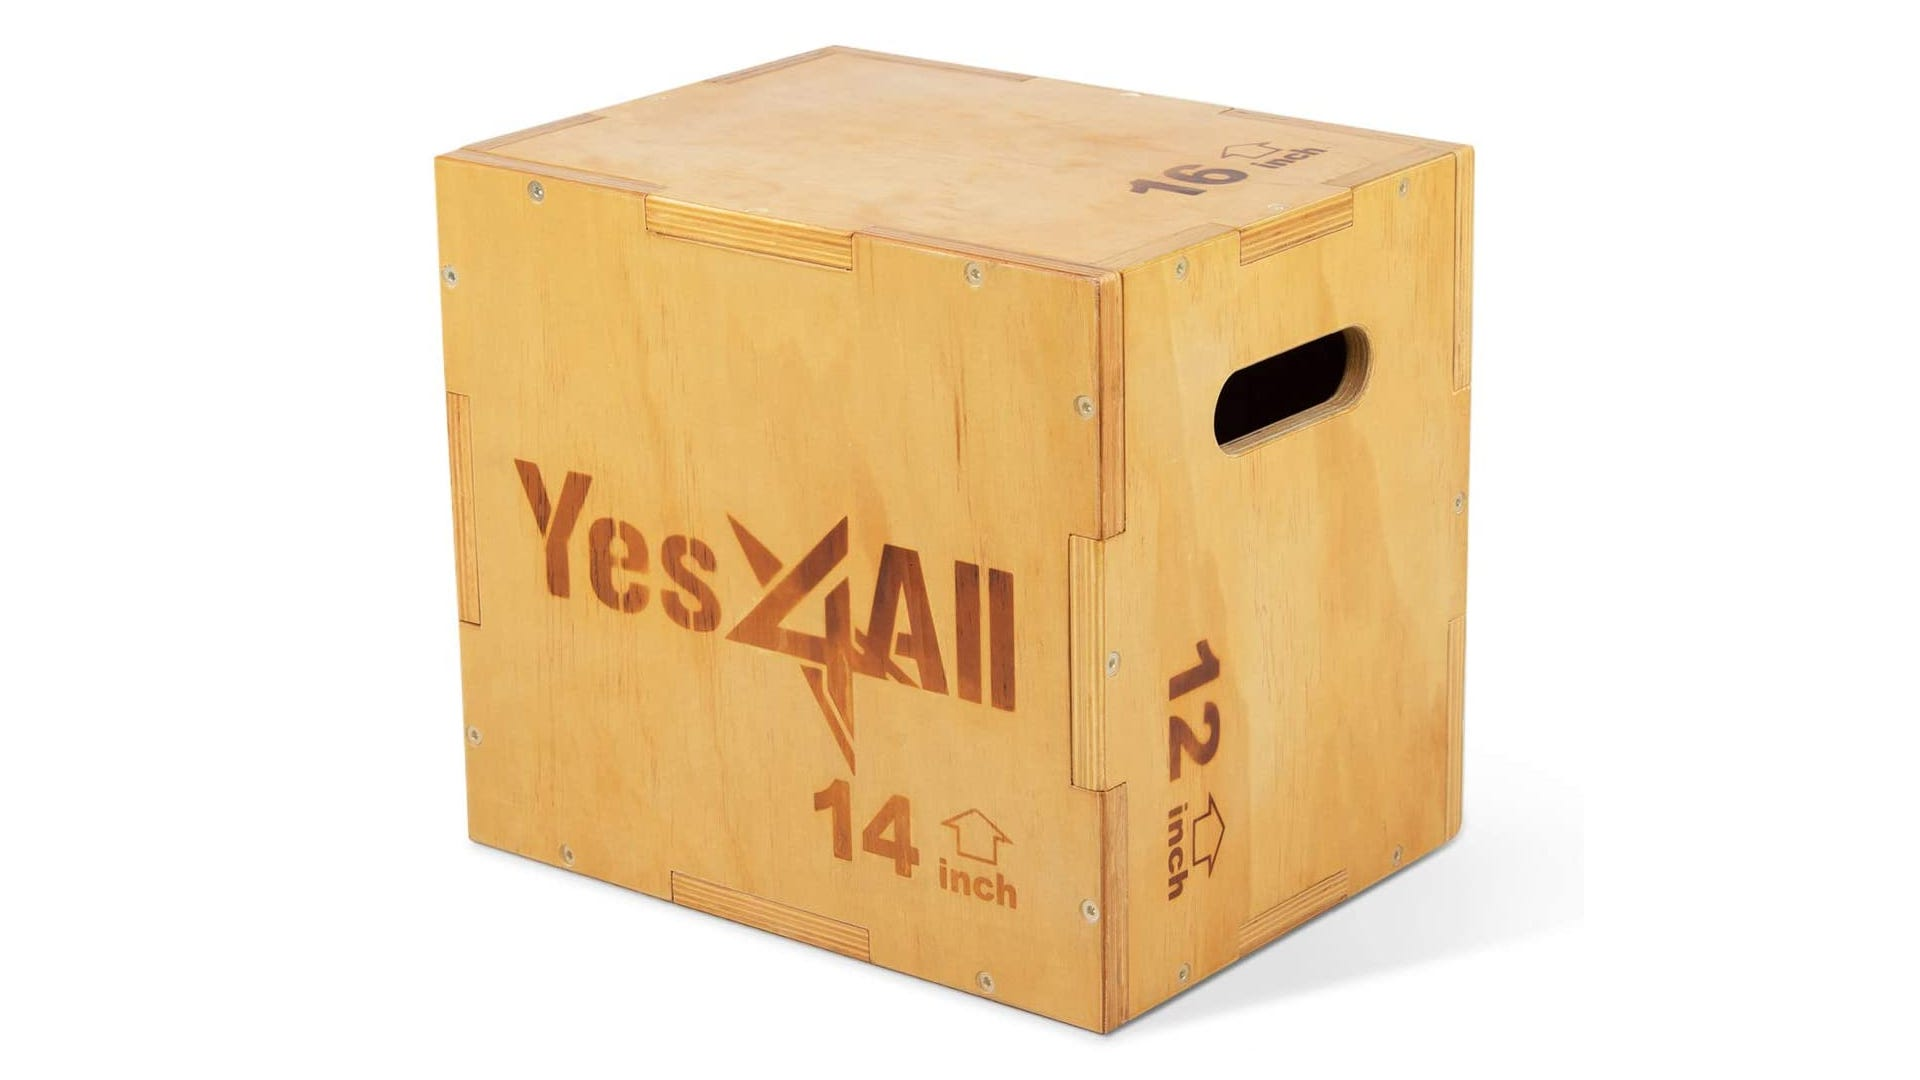 A wooden plyometric box with three different heights and a handle opening.